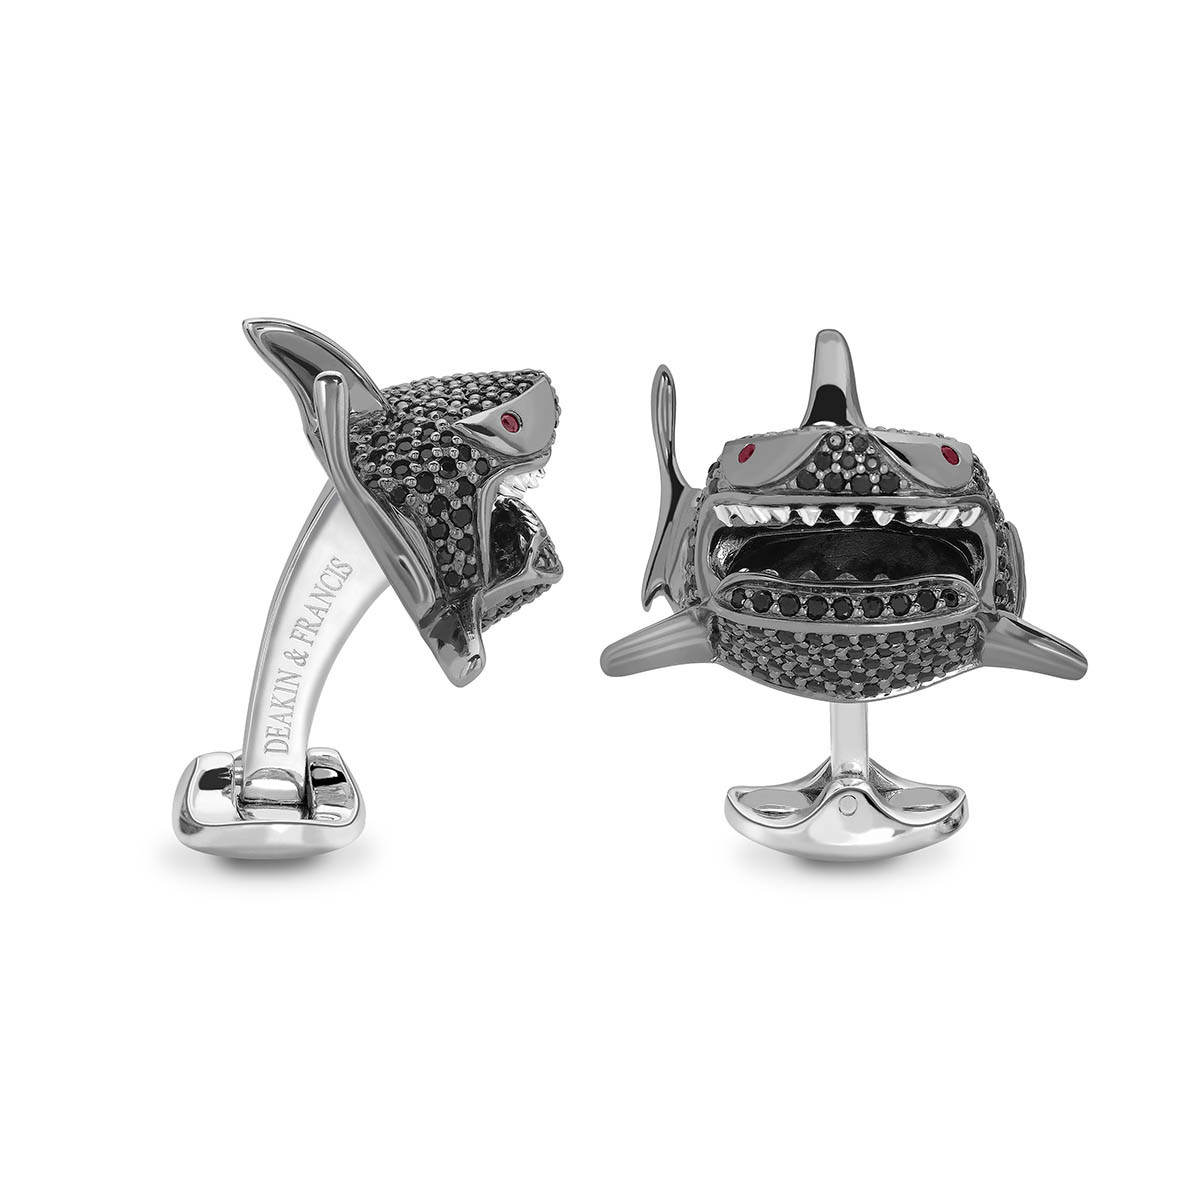 New Deakin & Francis Black Spinel Shark Cufflinks